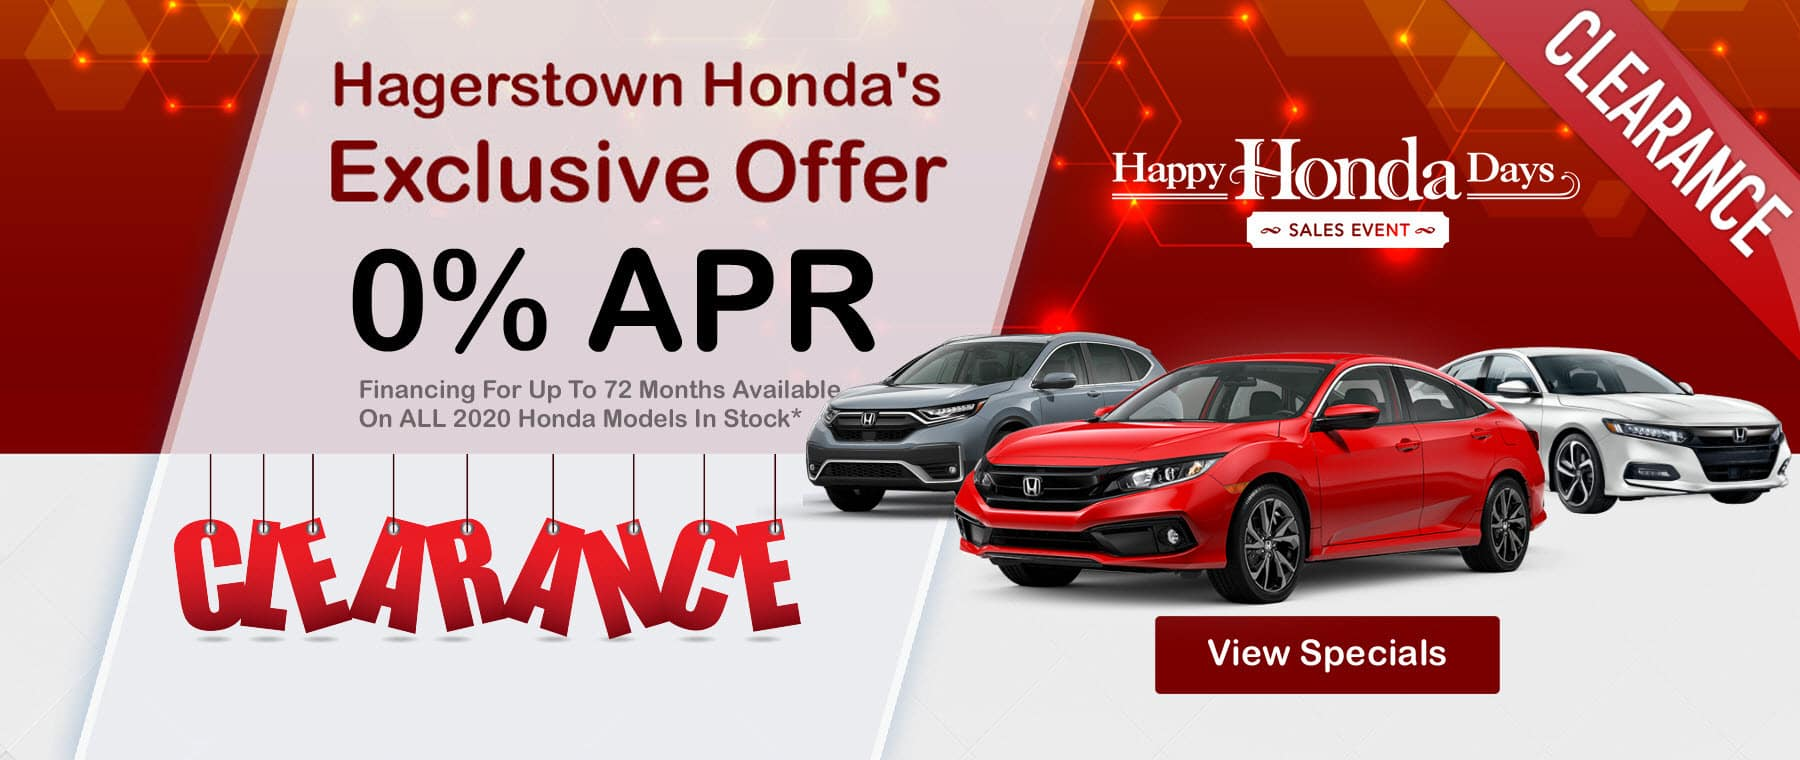 Hagerstown Honda's Exclusive Offer 0% APR Financing for up to 72 months available on ALL 2020 Honda Models in Stock. Happy Honda Days Sales Event